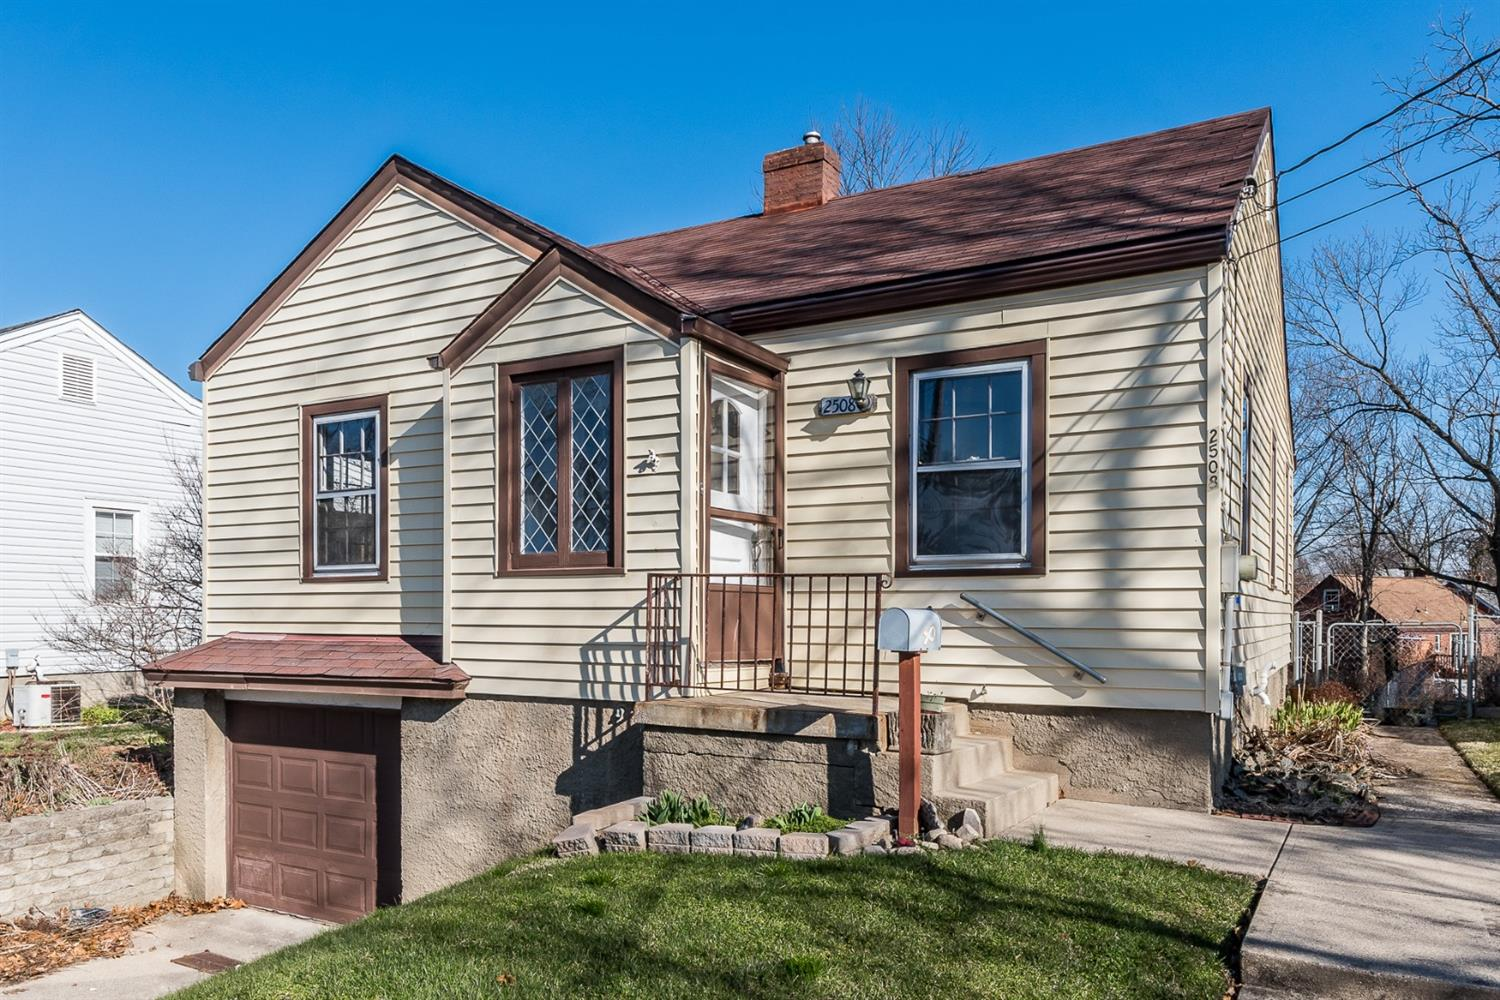 2508 Kipling Ave Mt. Airy, OH